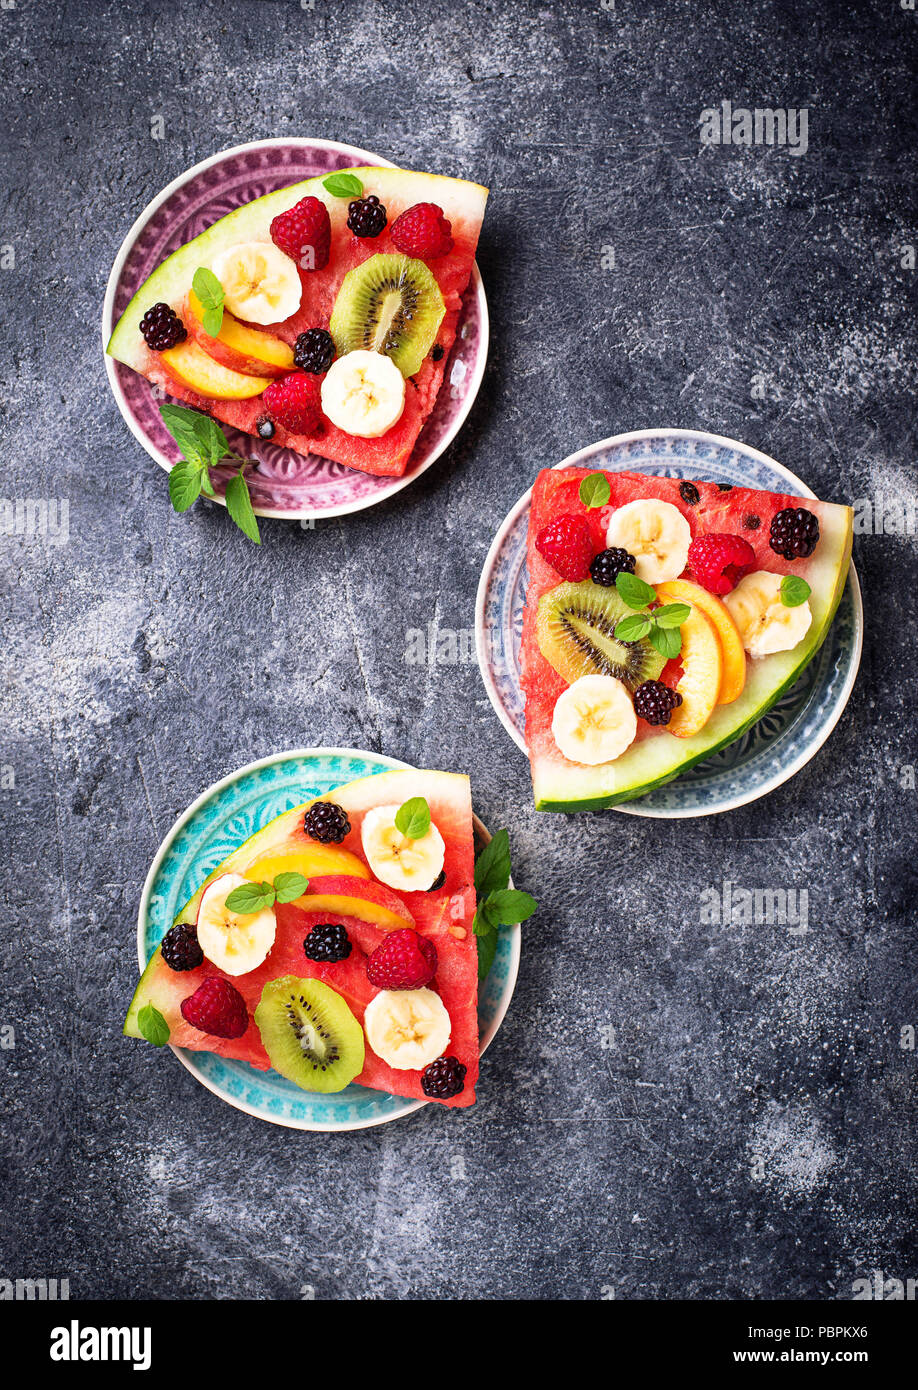 Watermelon pizza with fruit and berries. Healthy summer dessert - Stock Image